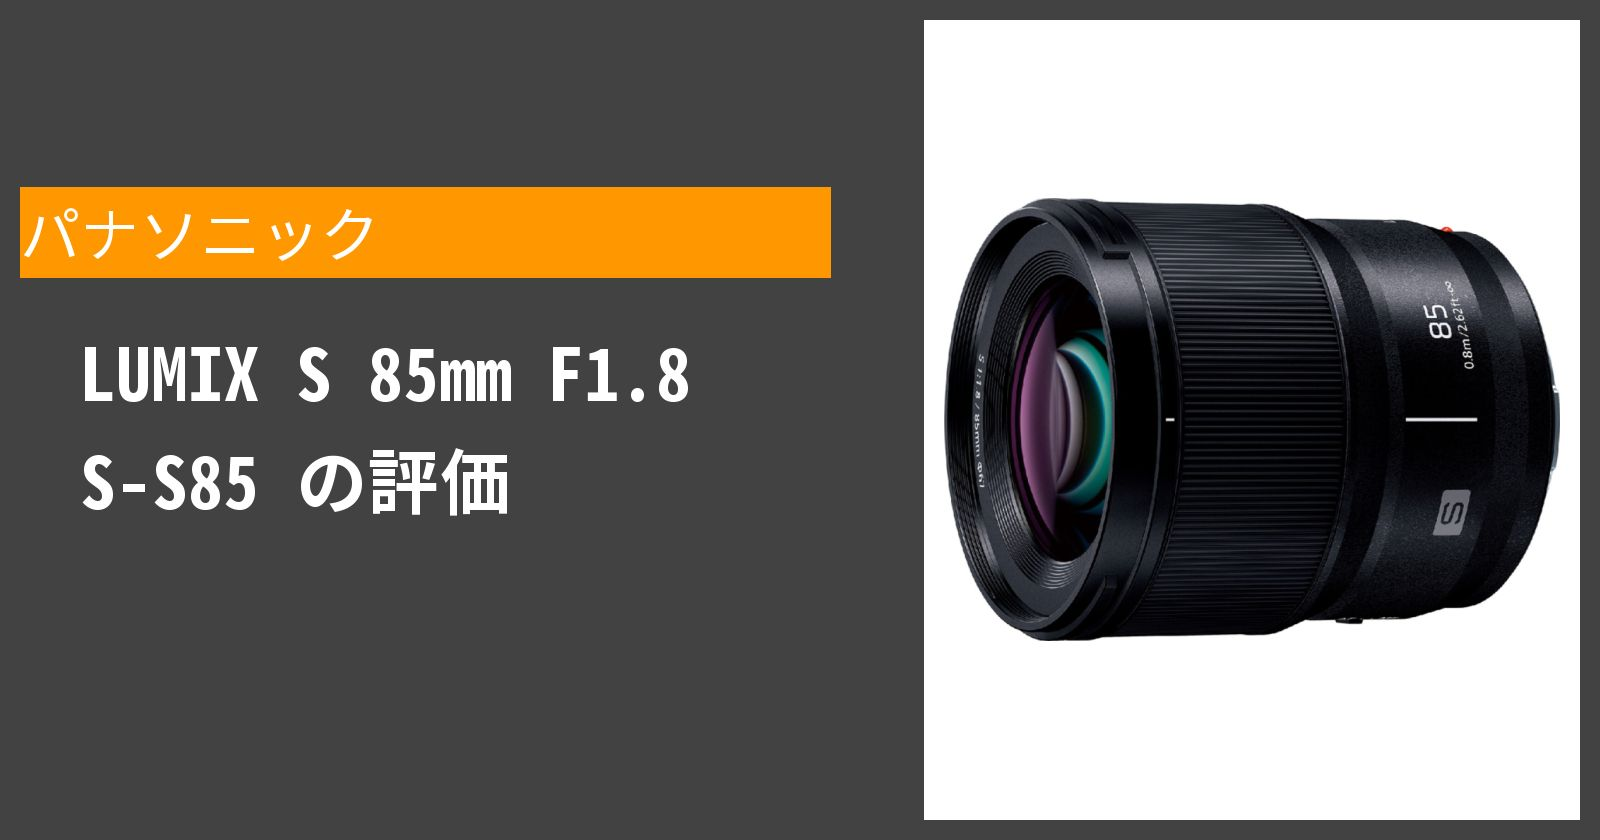 LUMIX S 85mm F1.8 S-S85を徹底評価